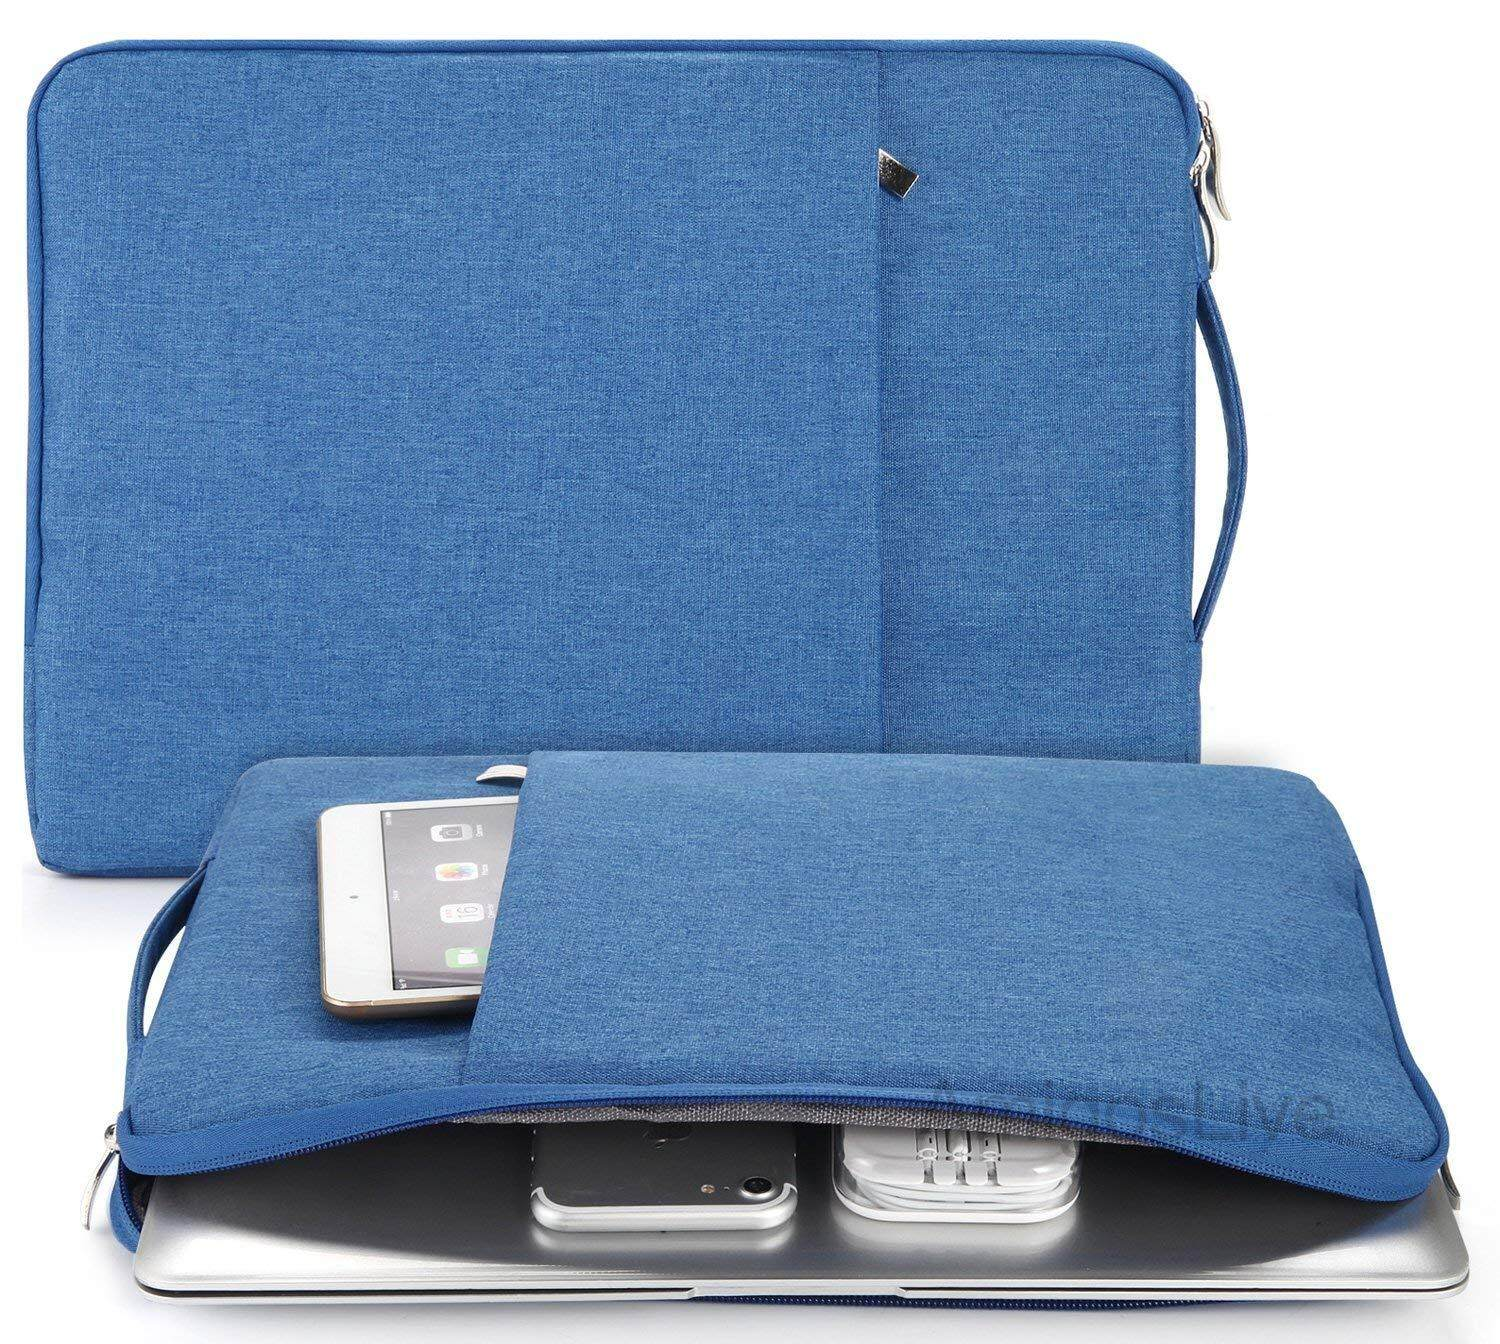 cb384f33f5 Laptop cases - Buy Laptop cases at Best Price in Malaysia